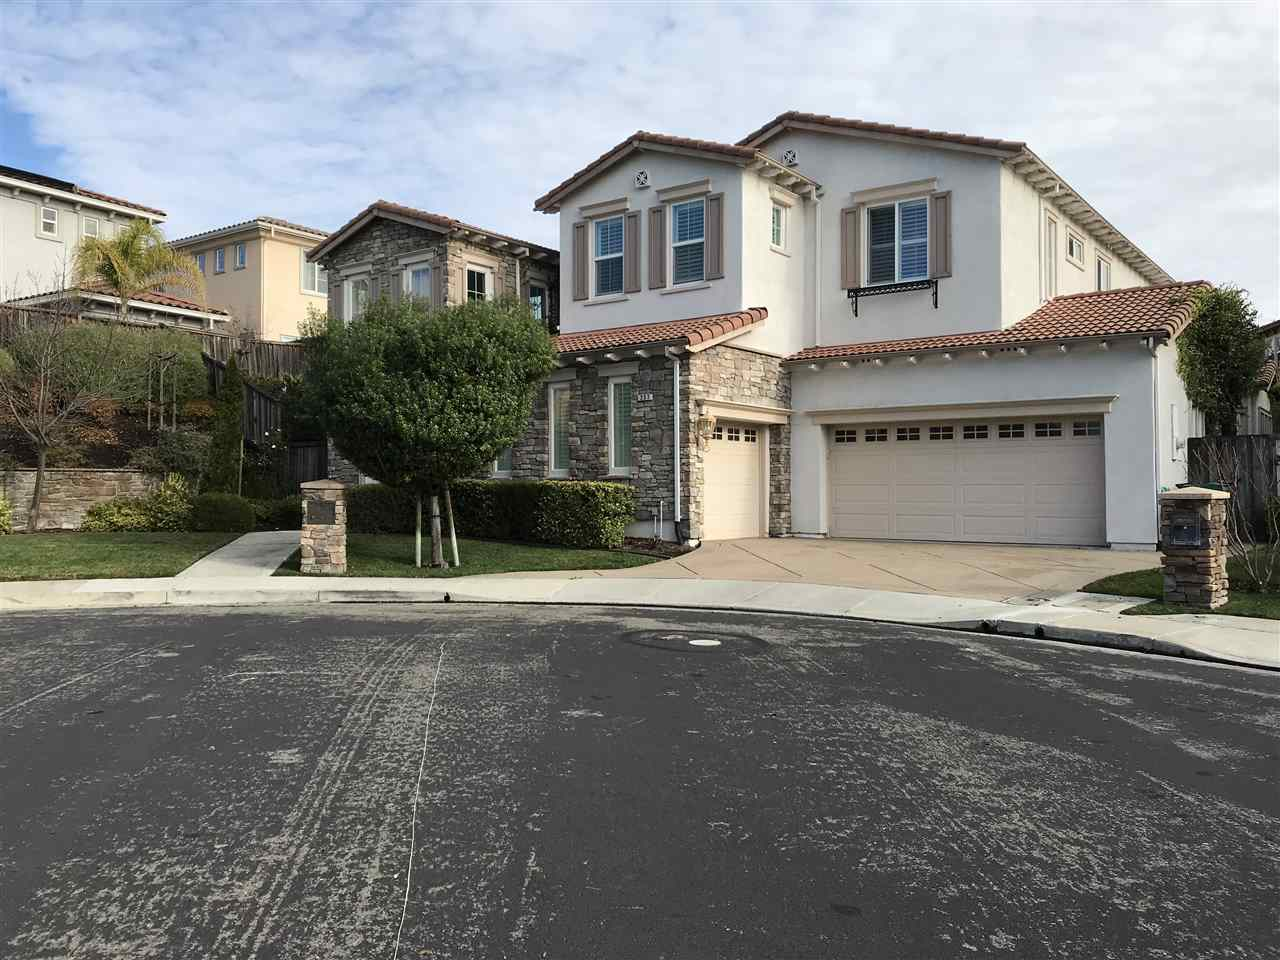 Single Family Home for Rent at 237 Angsley Court 237 Angsley Court San Ramon, California 94582 United States